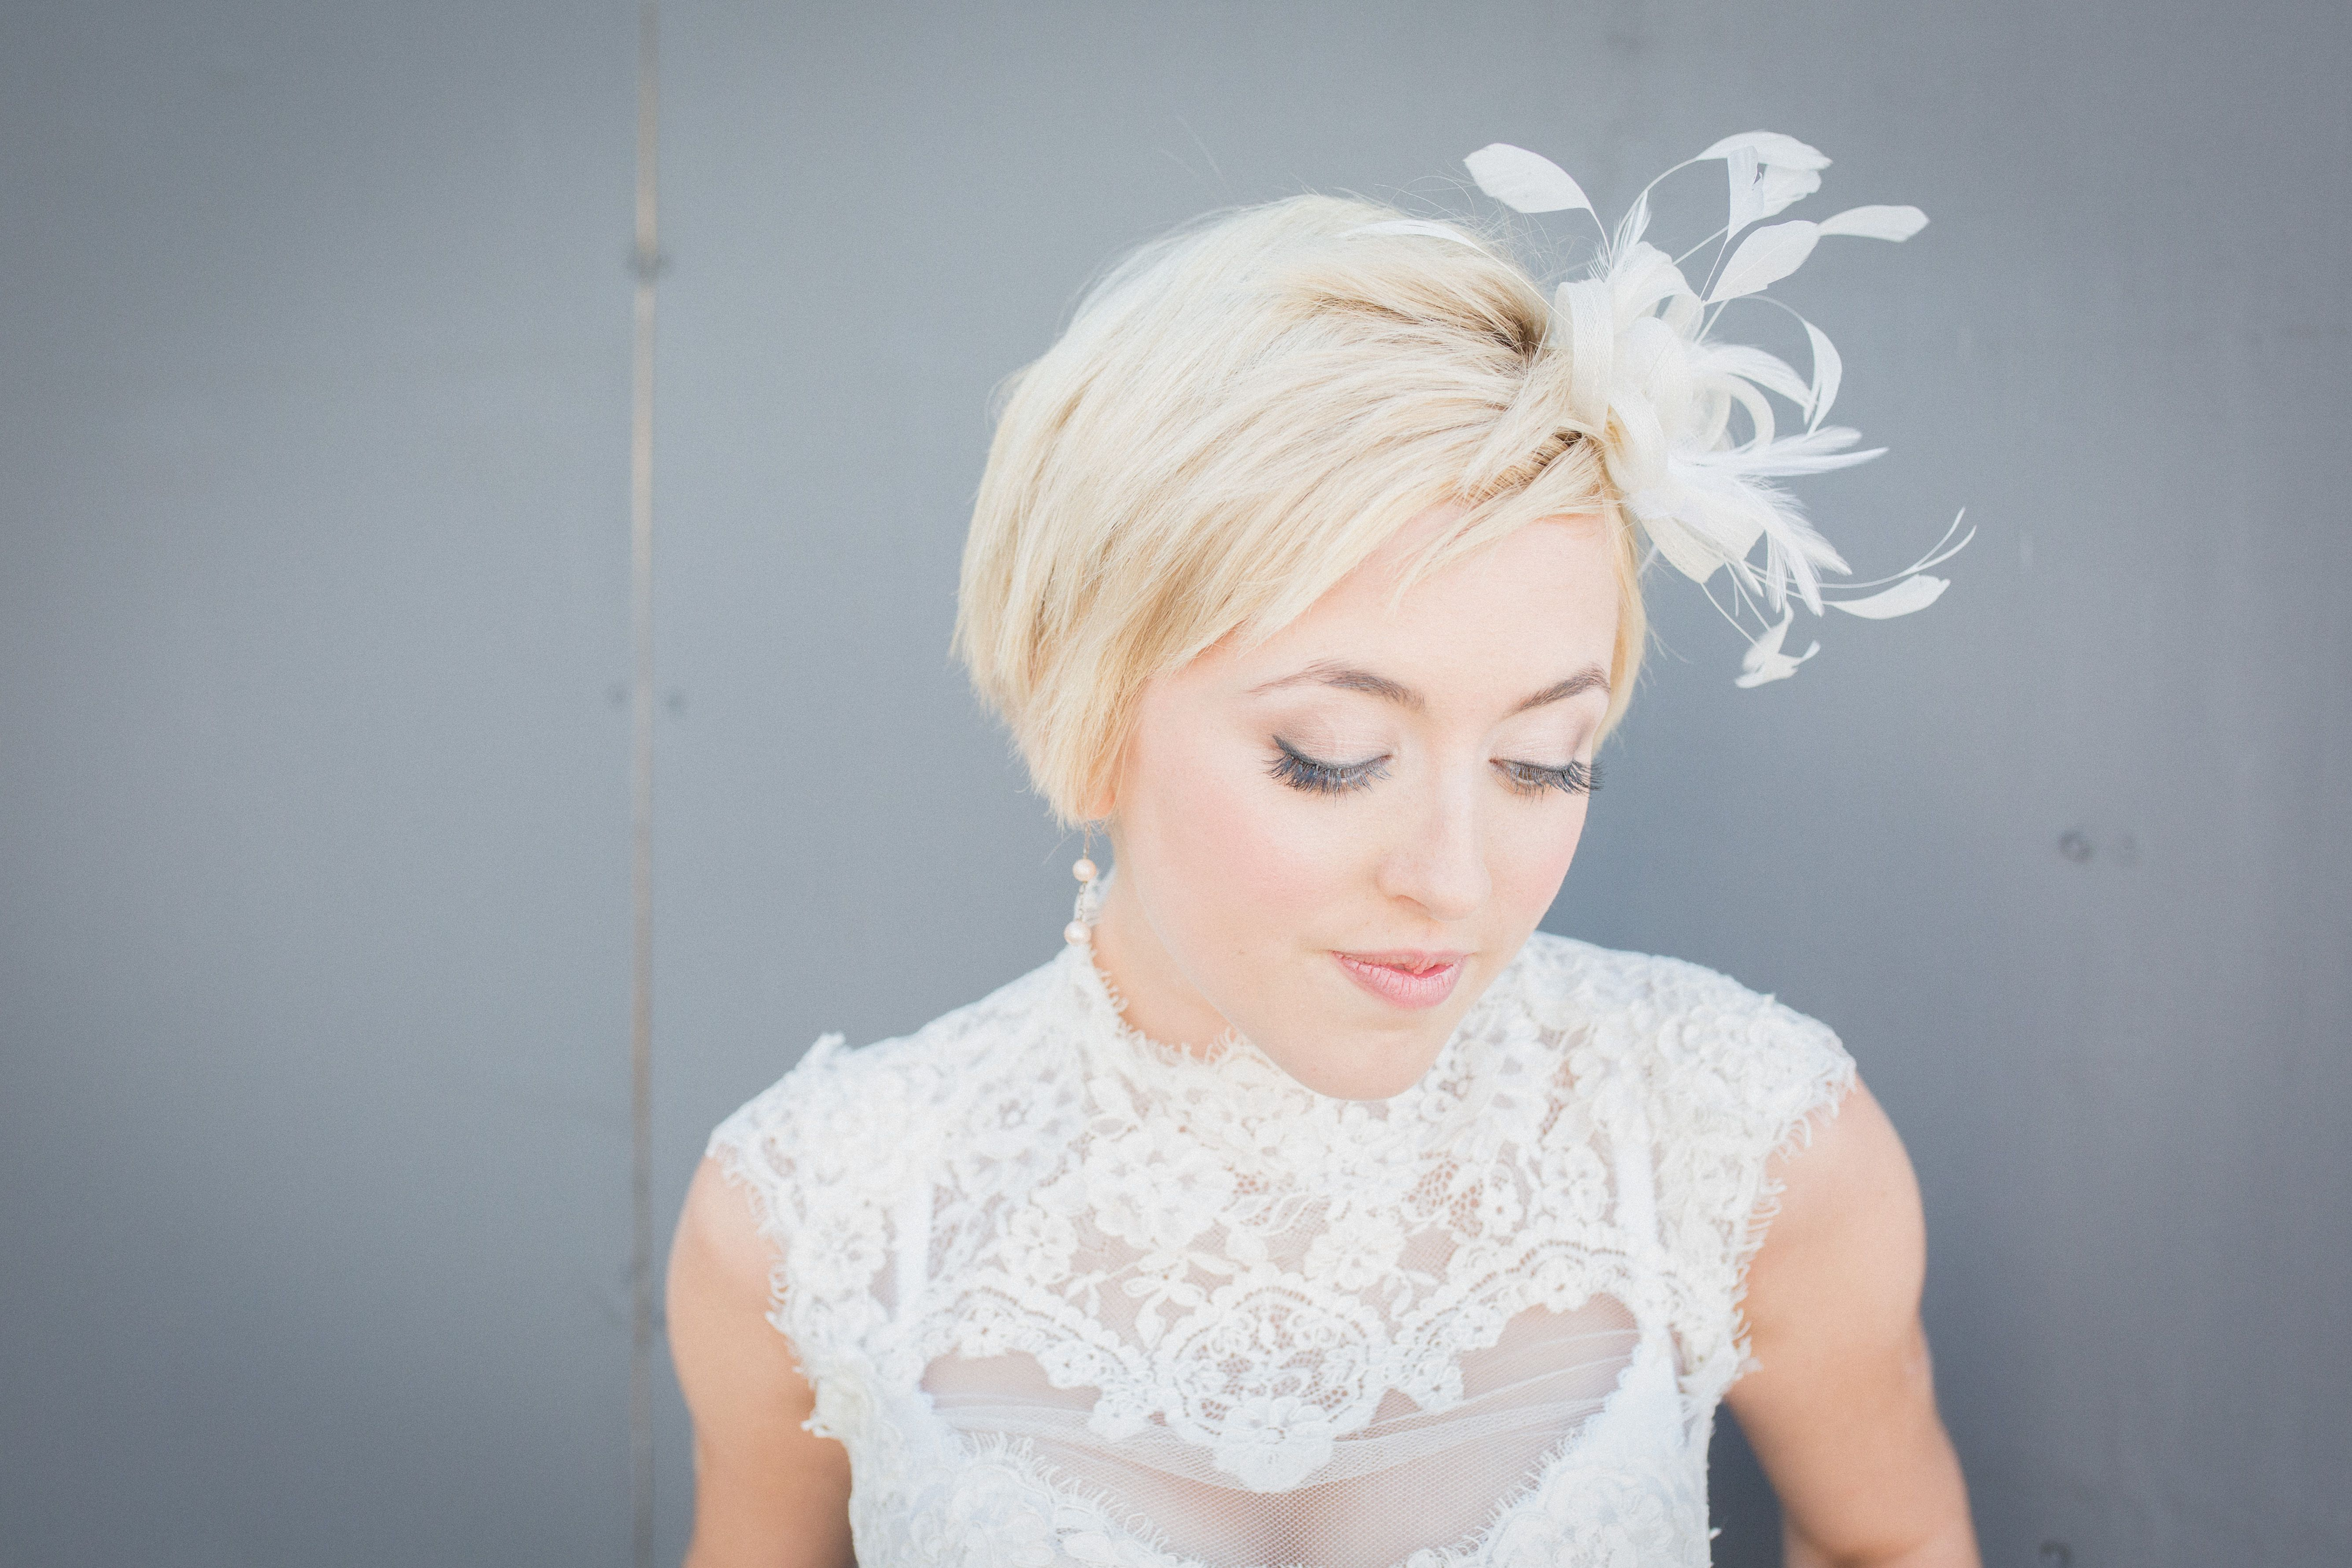 bridal hair & makeup @bristol planetarium photoshoot june15